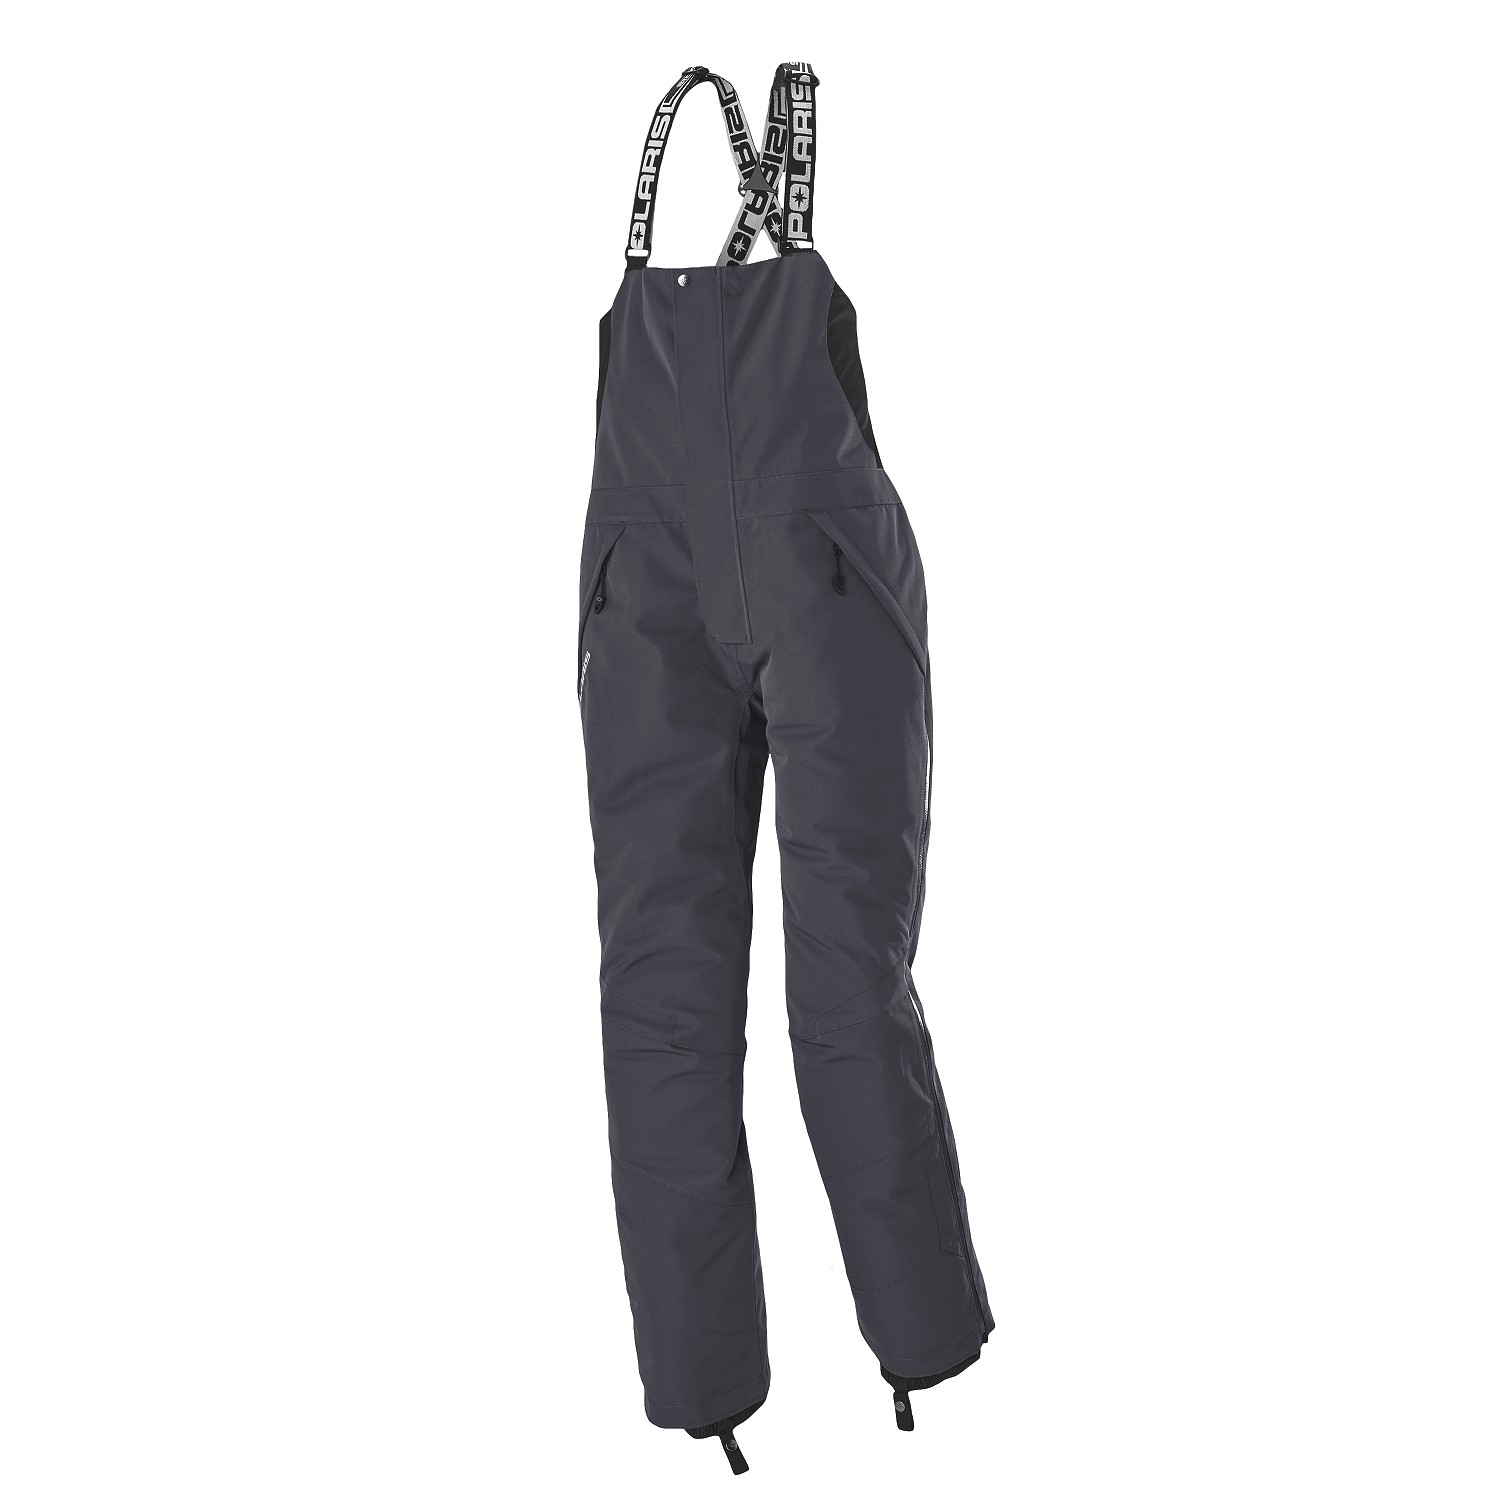 Women's Northstar Bib Snow Pants